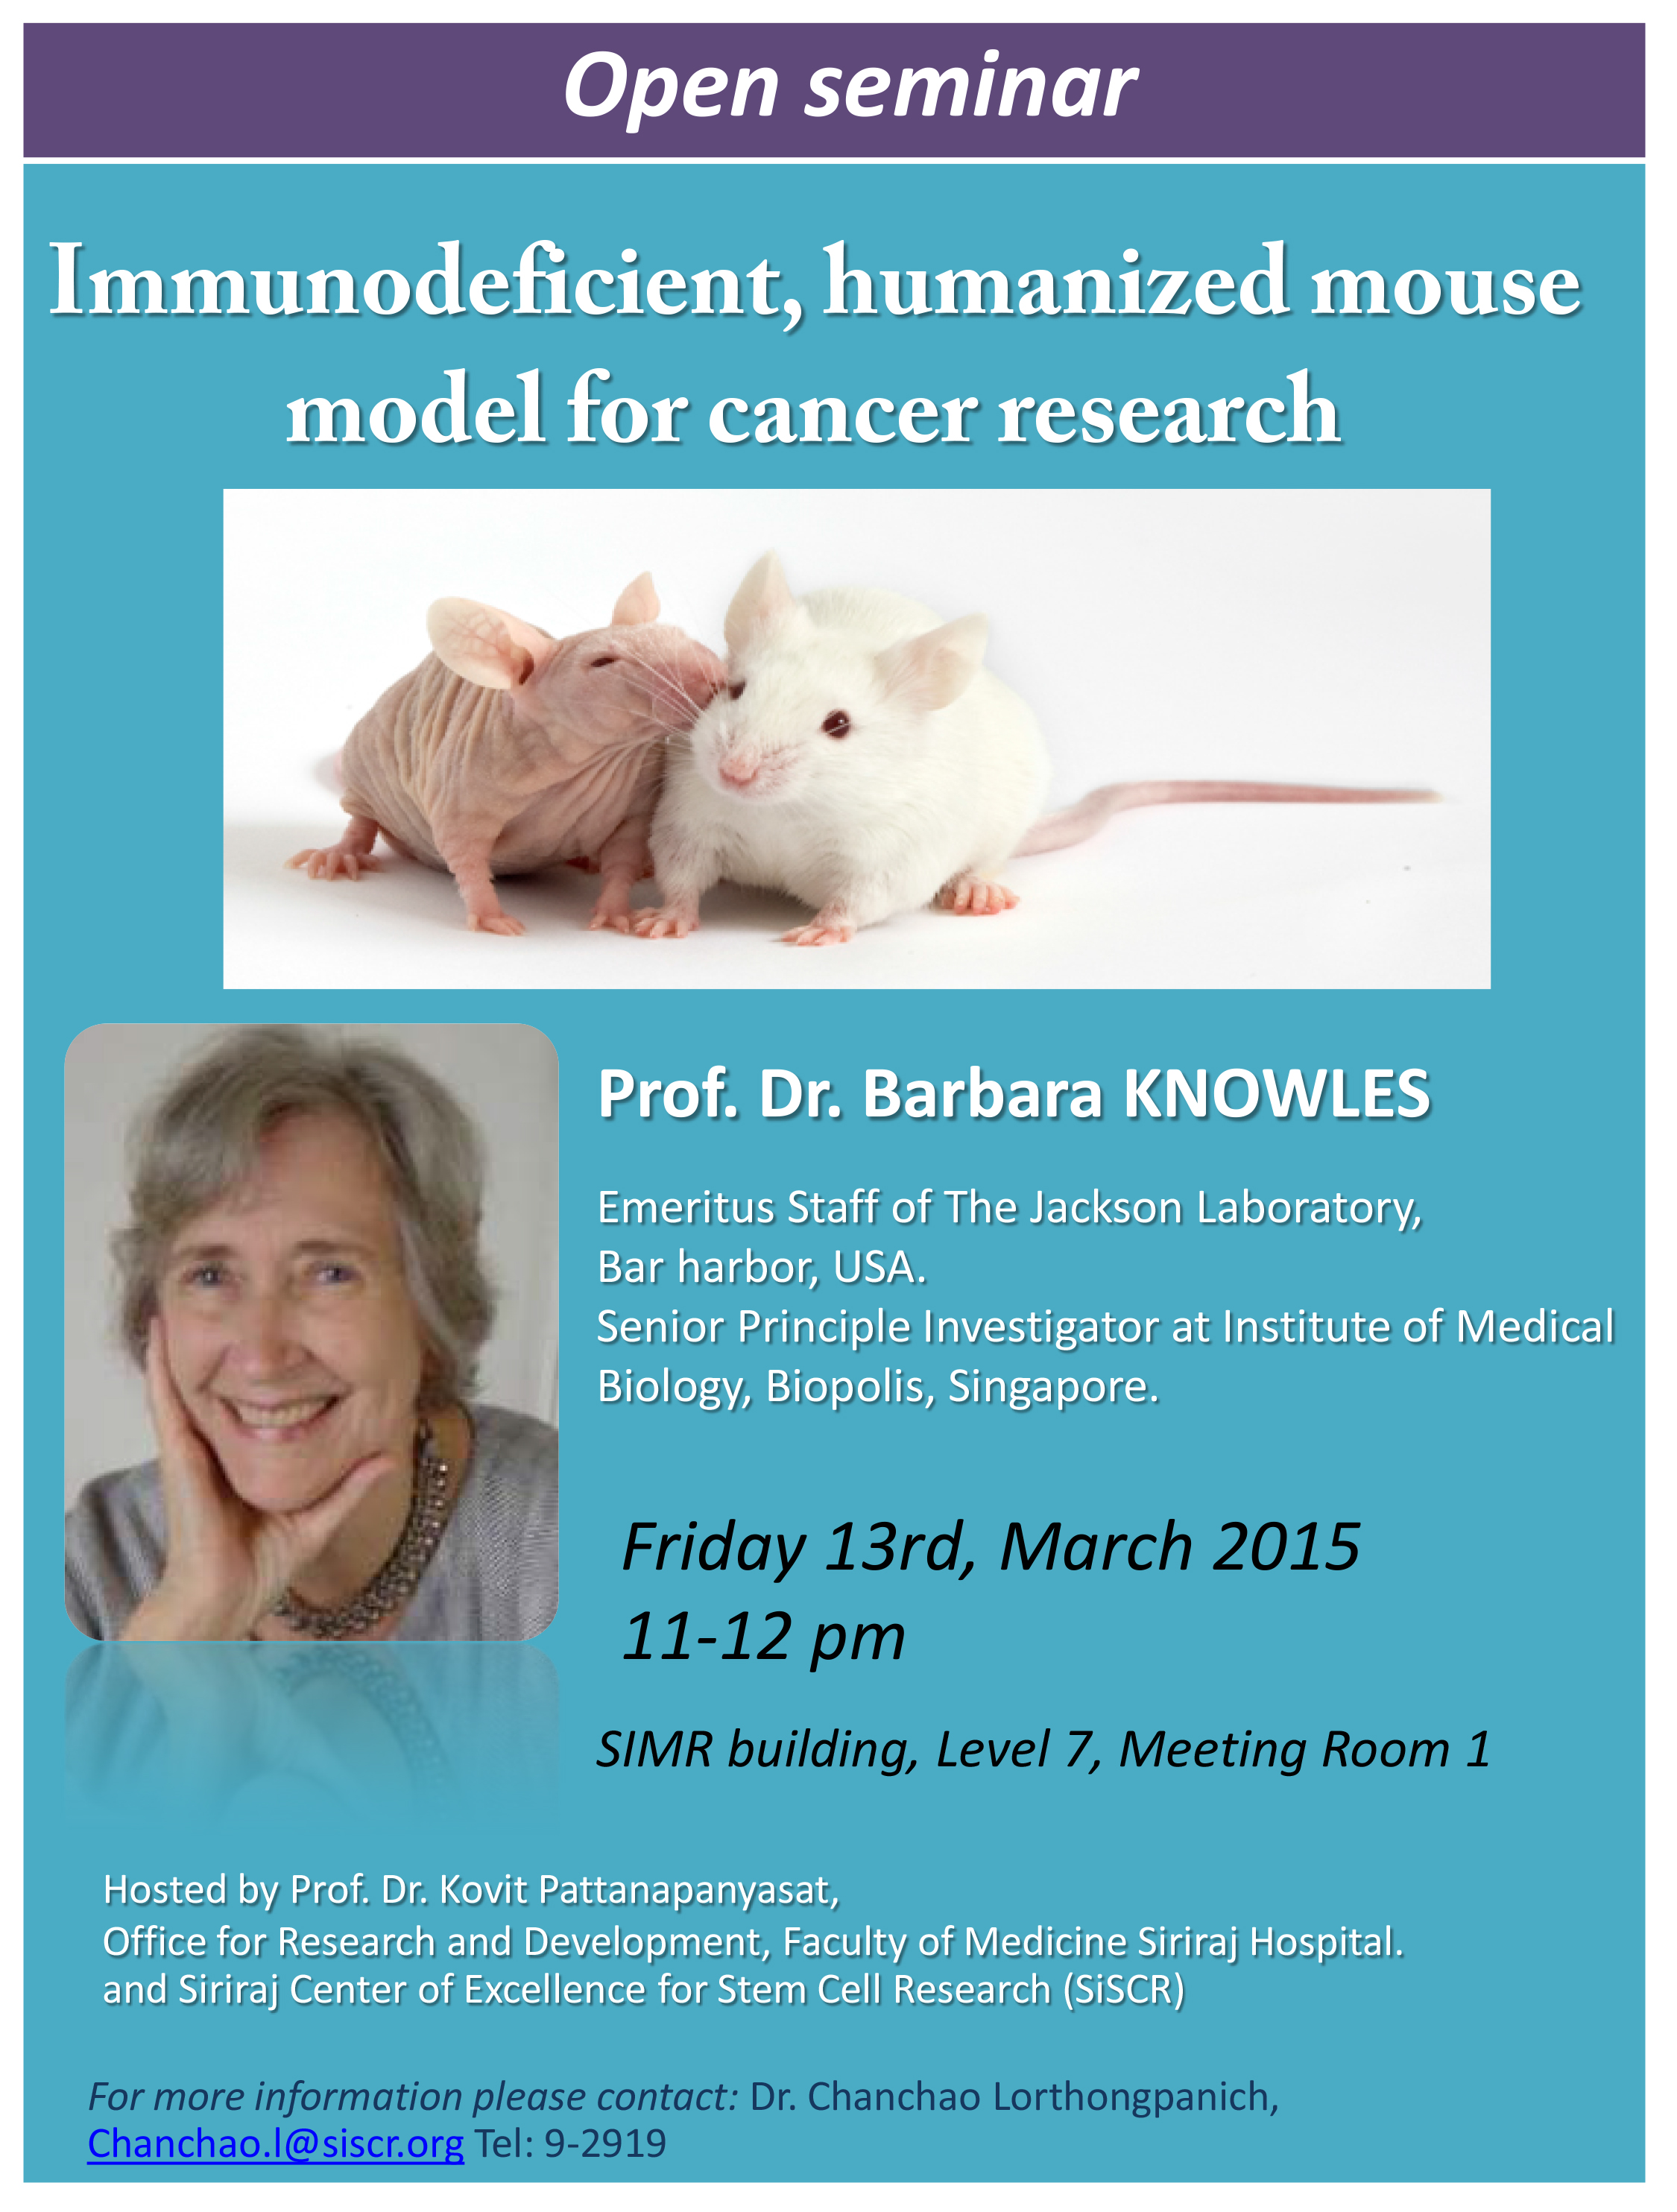 Immunodeficient, humanized mouse model for cancer researchImmunodeficient, humanized mouse model for cancer research